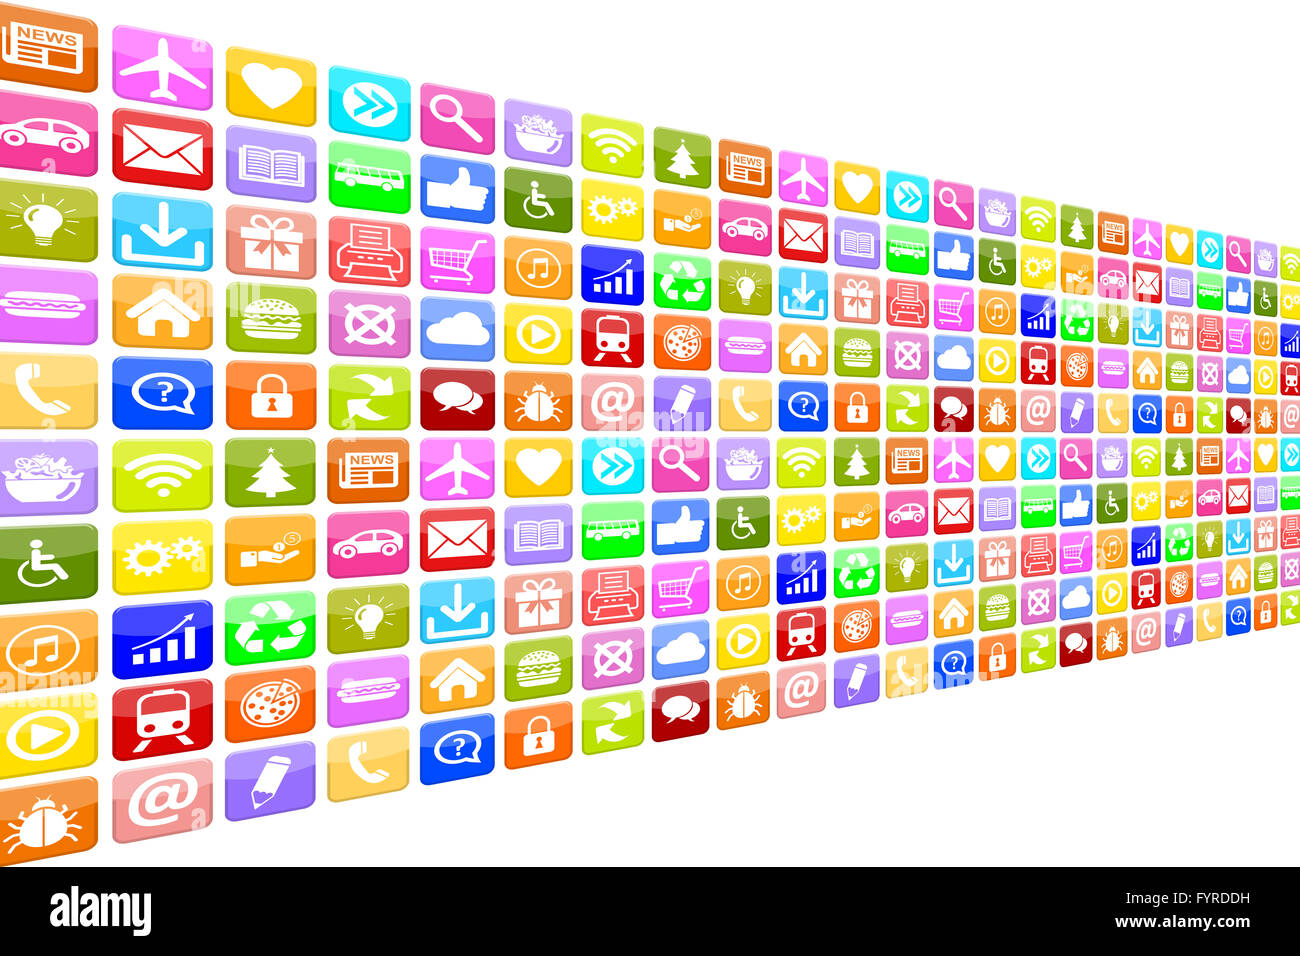 Application Apps App Icon Icons Set für Handy oder Smartphone - Stock Image